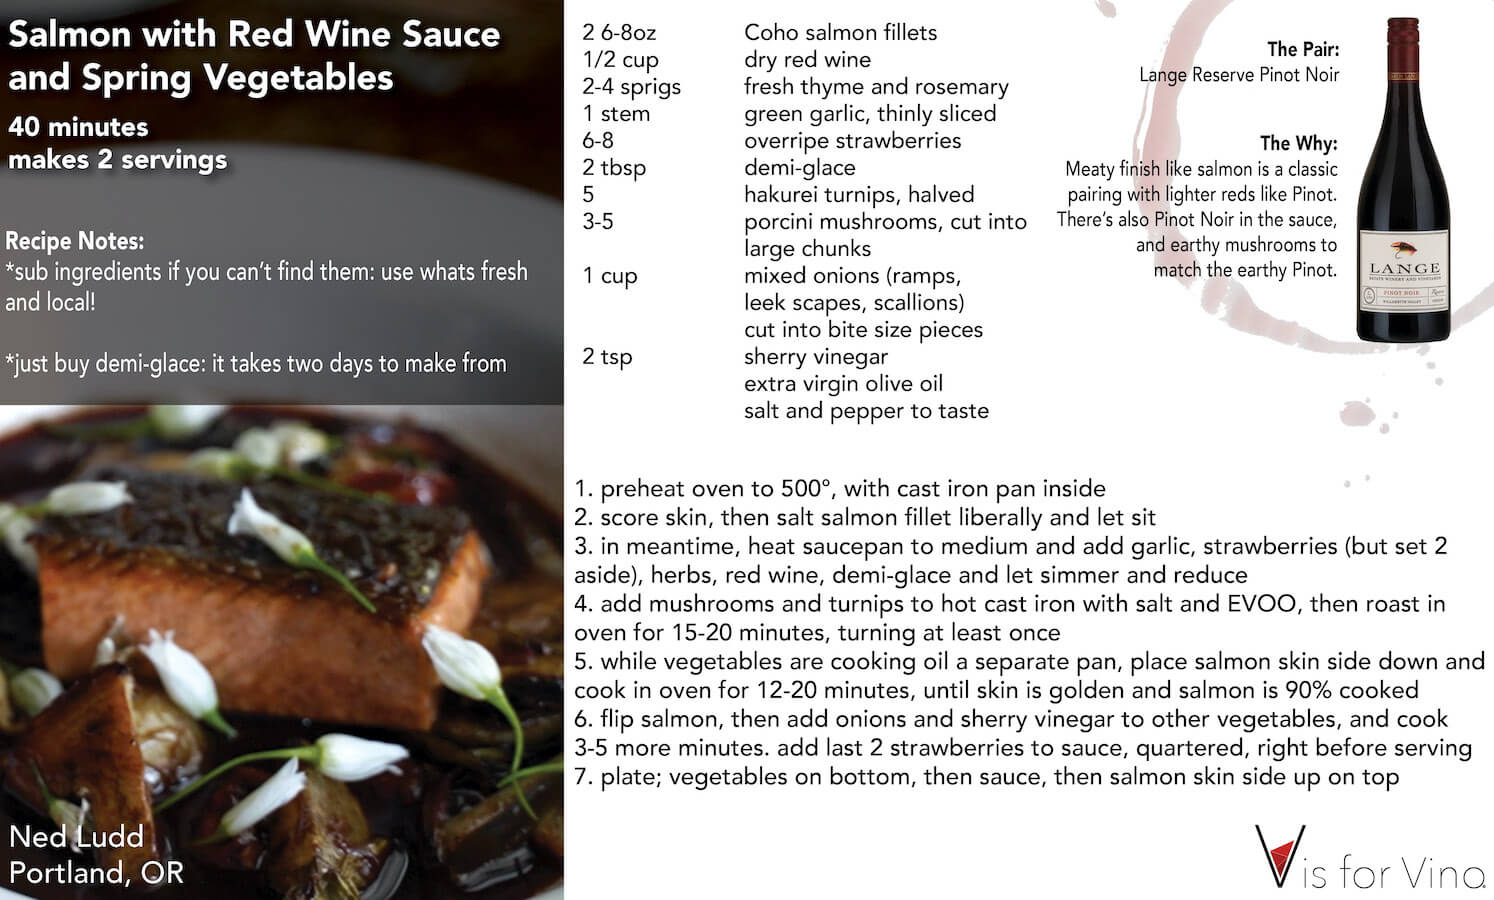 Oregon Salmon with red wine sauce